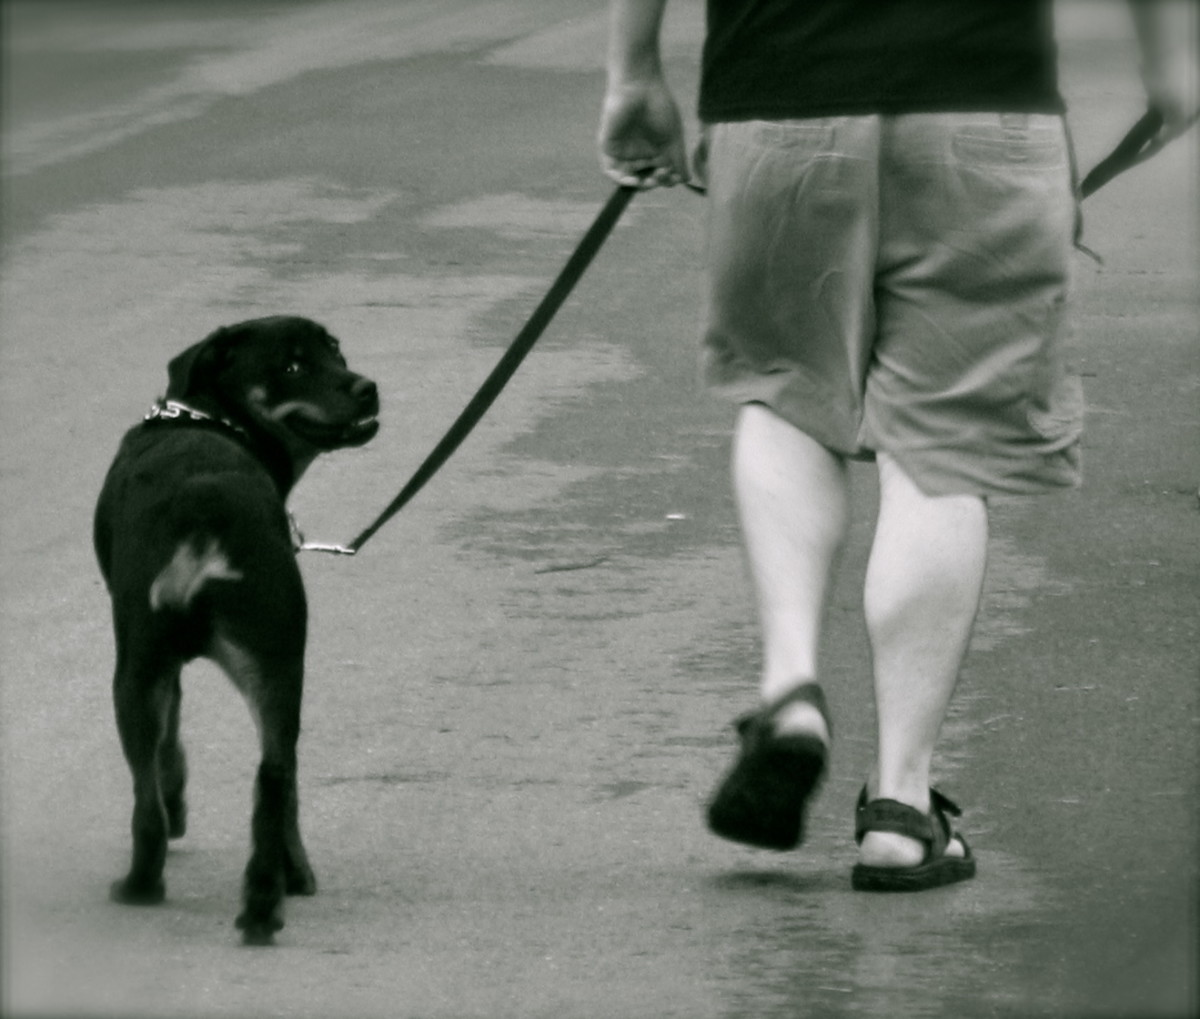 Taking the dog for a walk on a regular basis, will help your pup behave better in the house.